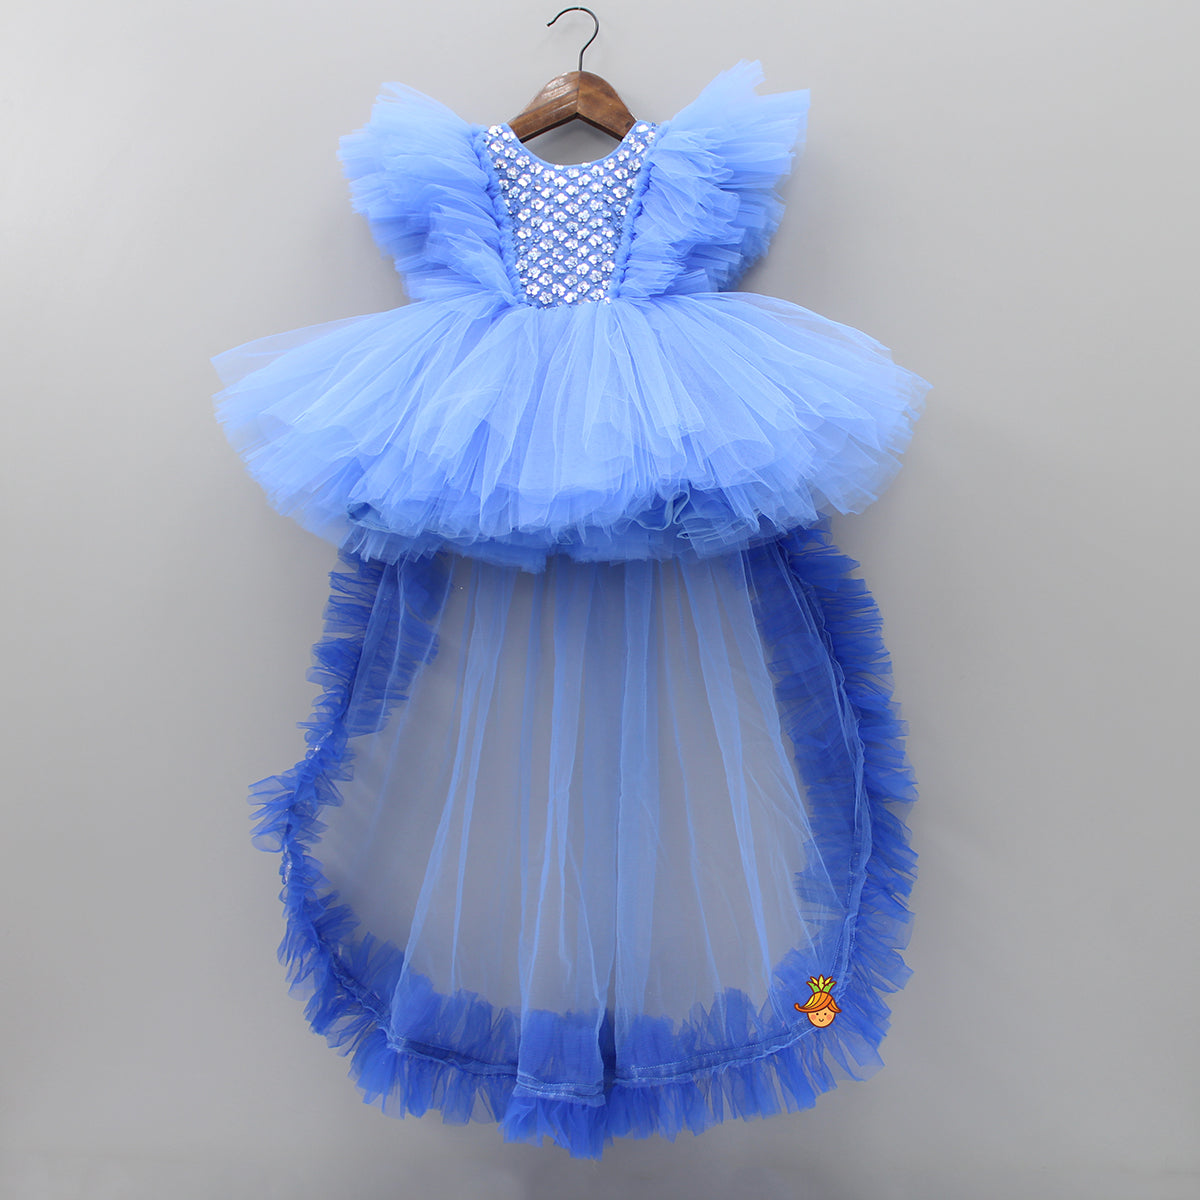 Pre Order: Blue Party Dress With Detachable Drape